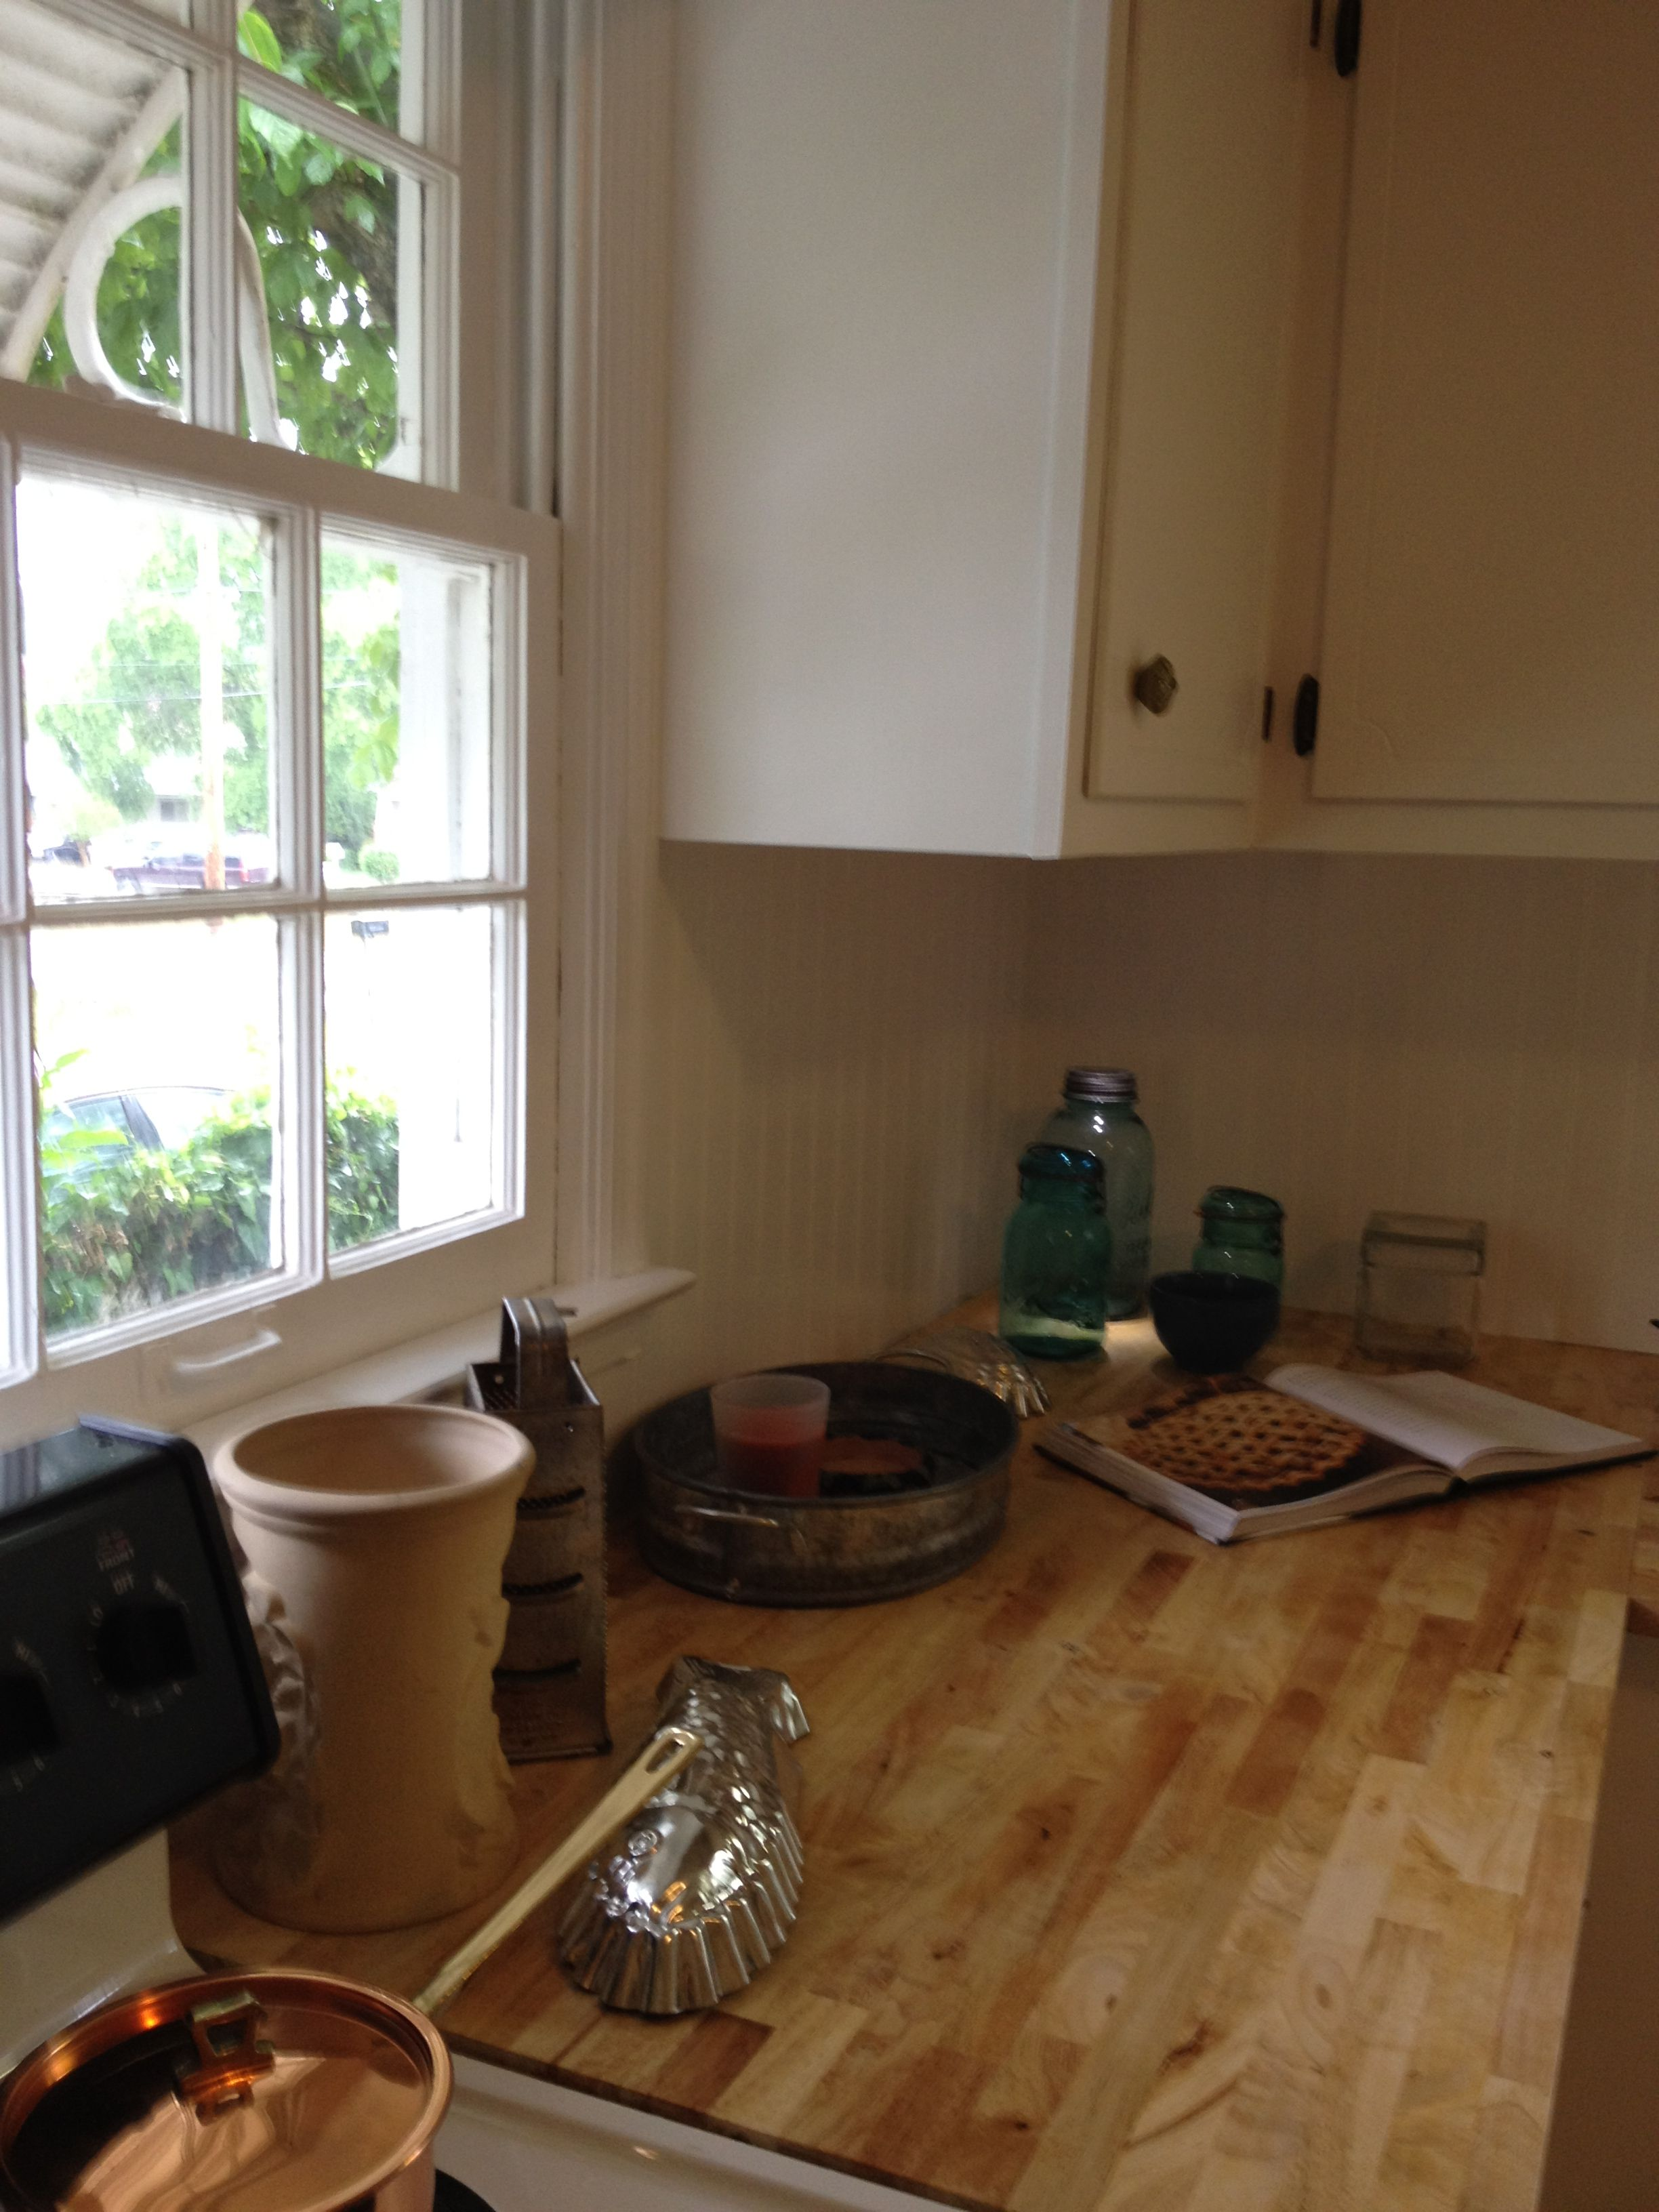 Butcher Block Counter Tops With Bees Wax Finish Cheap